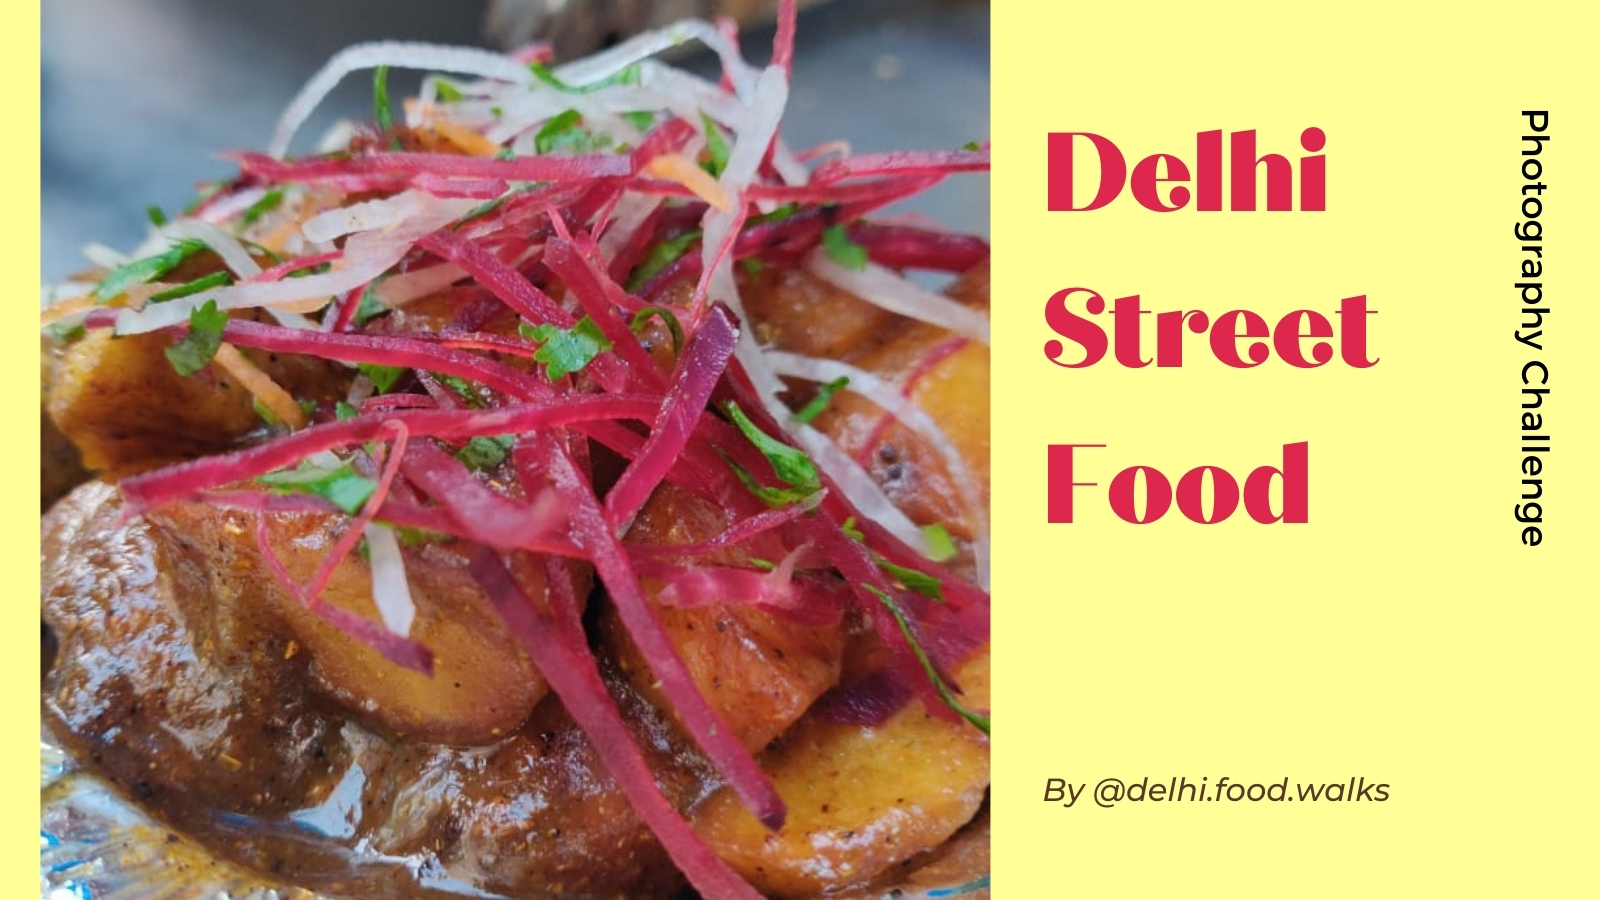 Delhi Street Food - Photography Challenge (By DelhiFoodWalks)